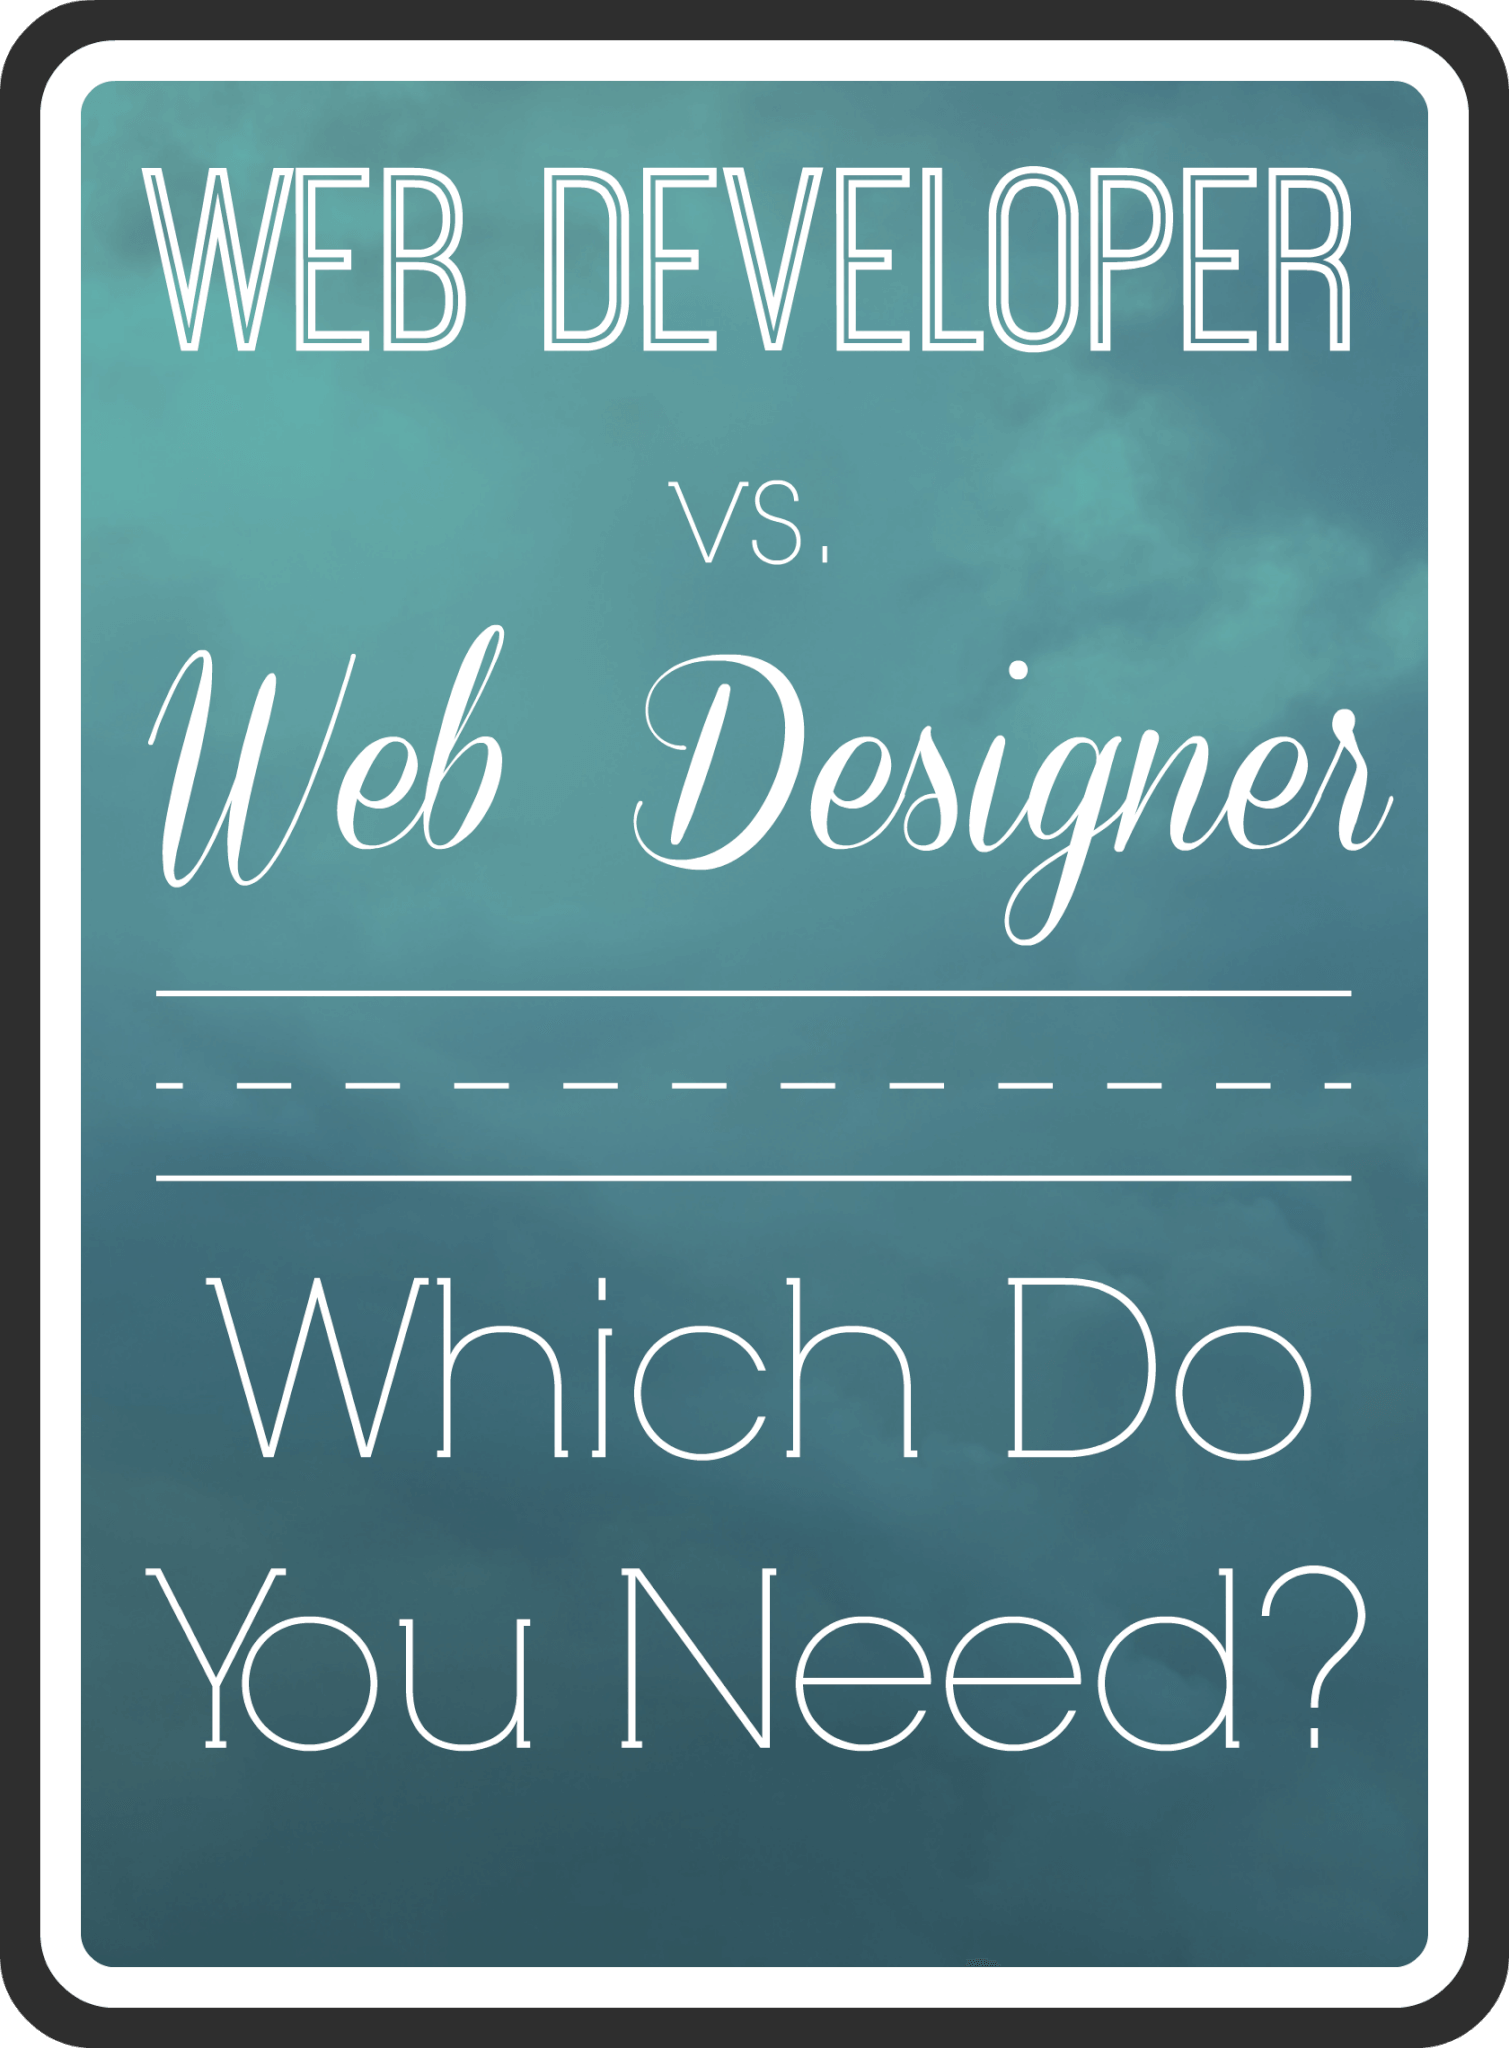 What's the difference between a web developer and a web designer?